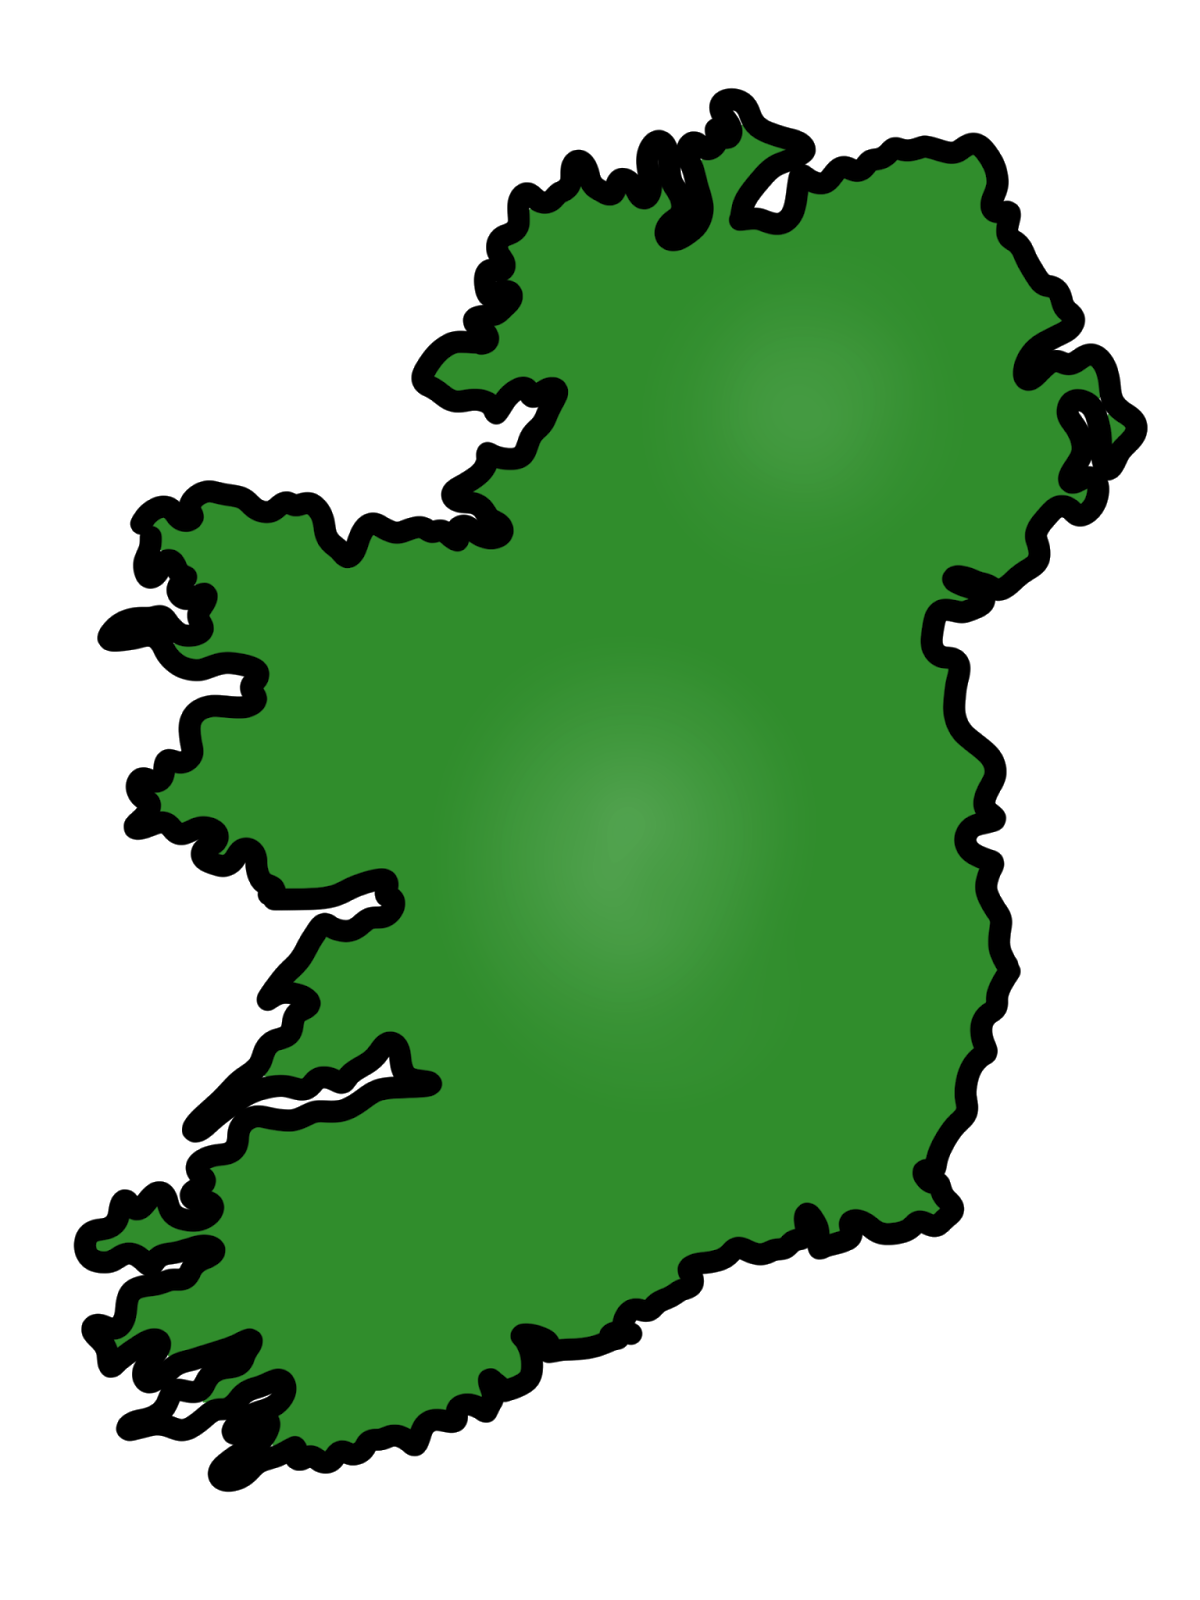 Ireland clipart free vector black and white library Free Irish Cliparts, Download Free Clip Art, Free Clip Art on ... vector black and white library